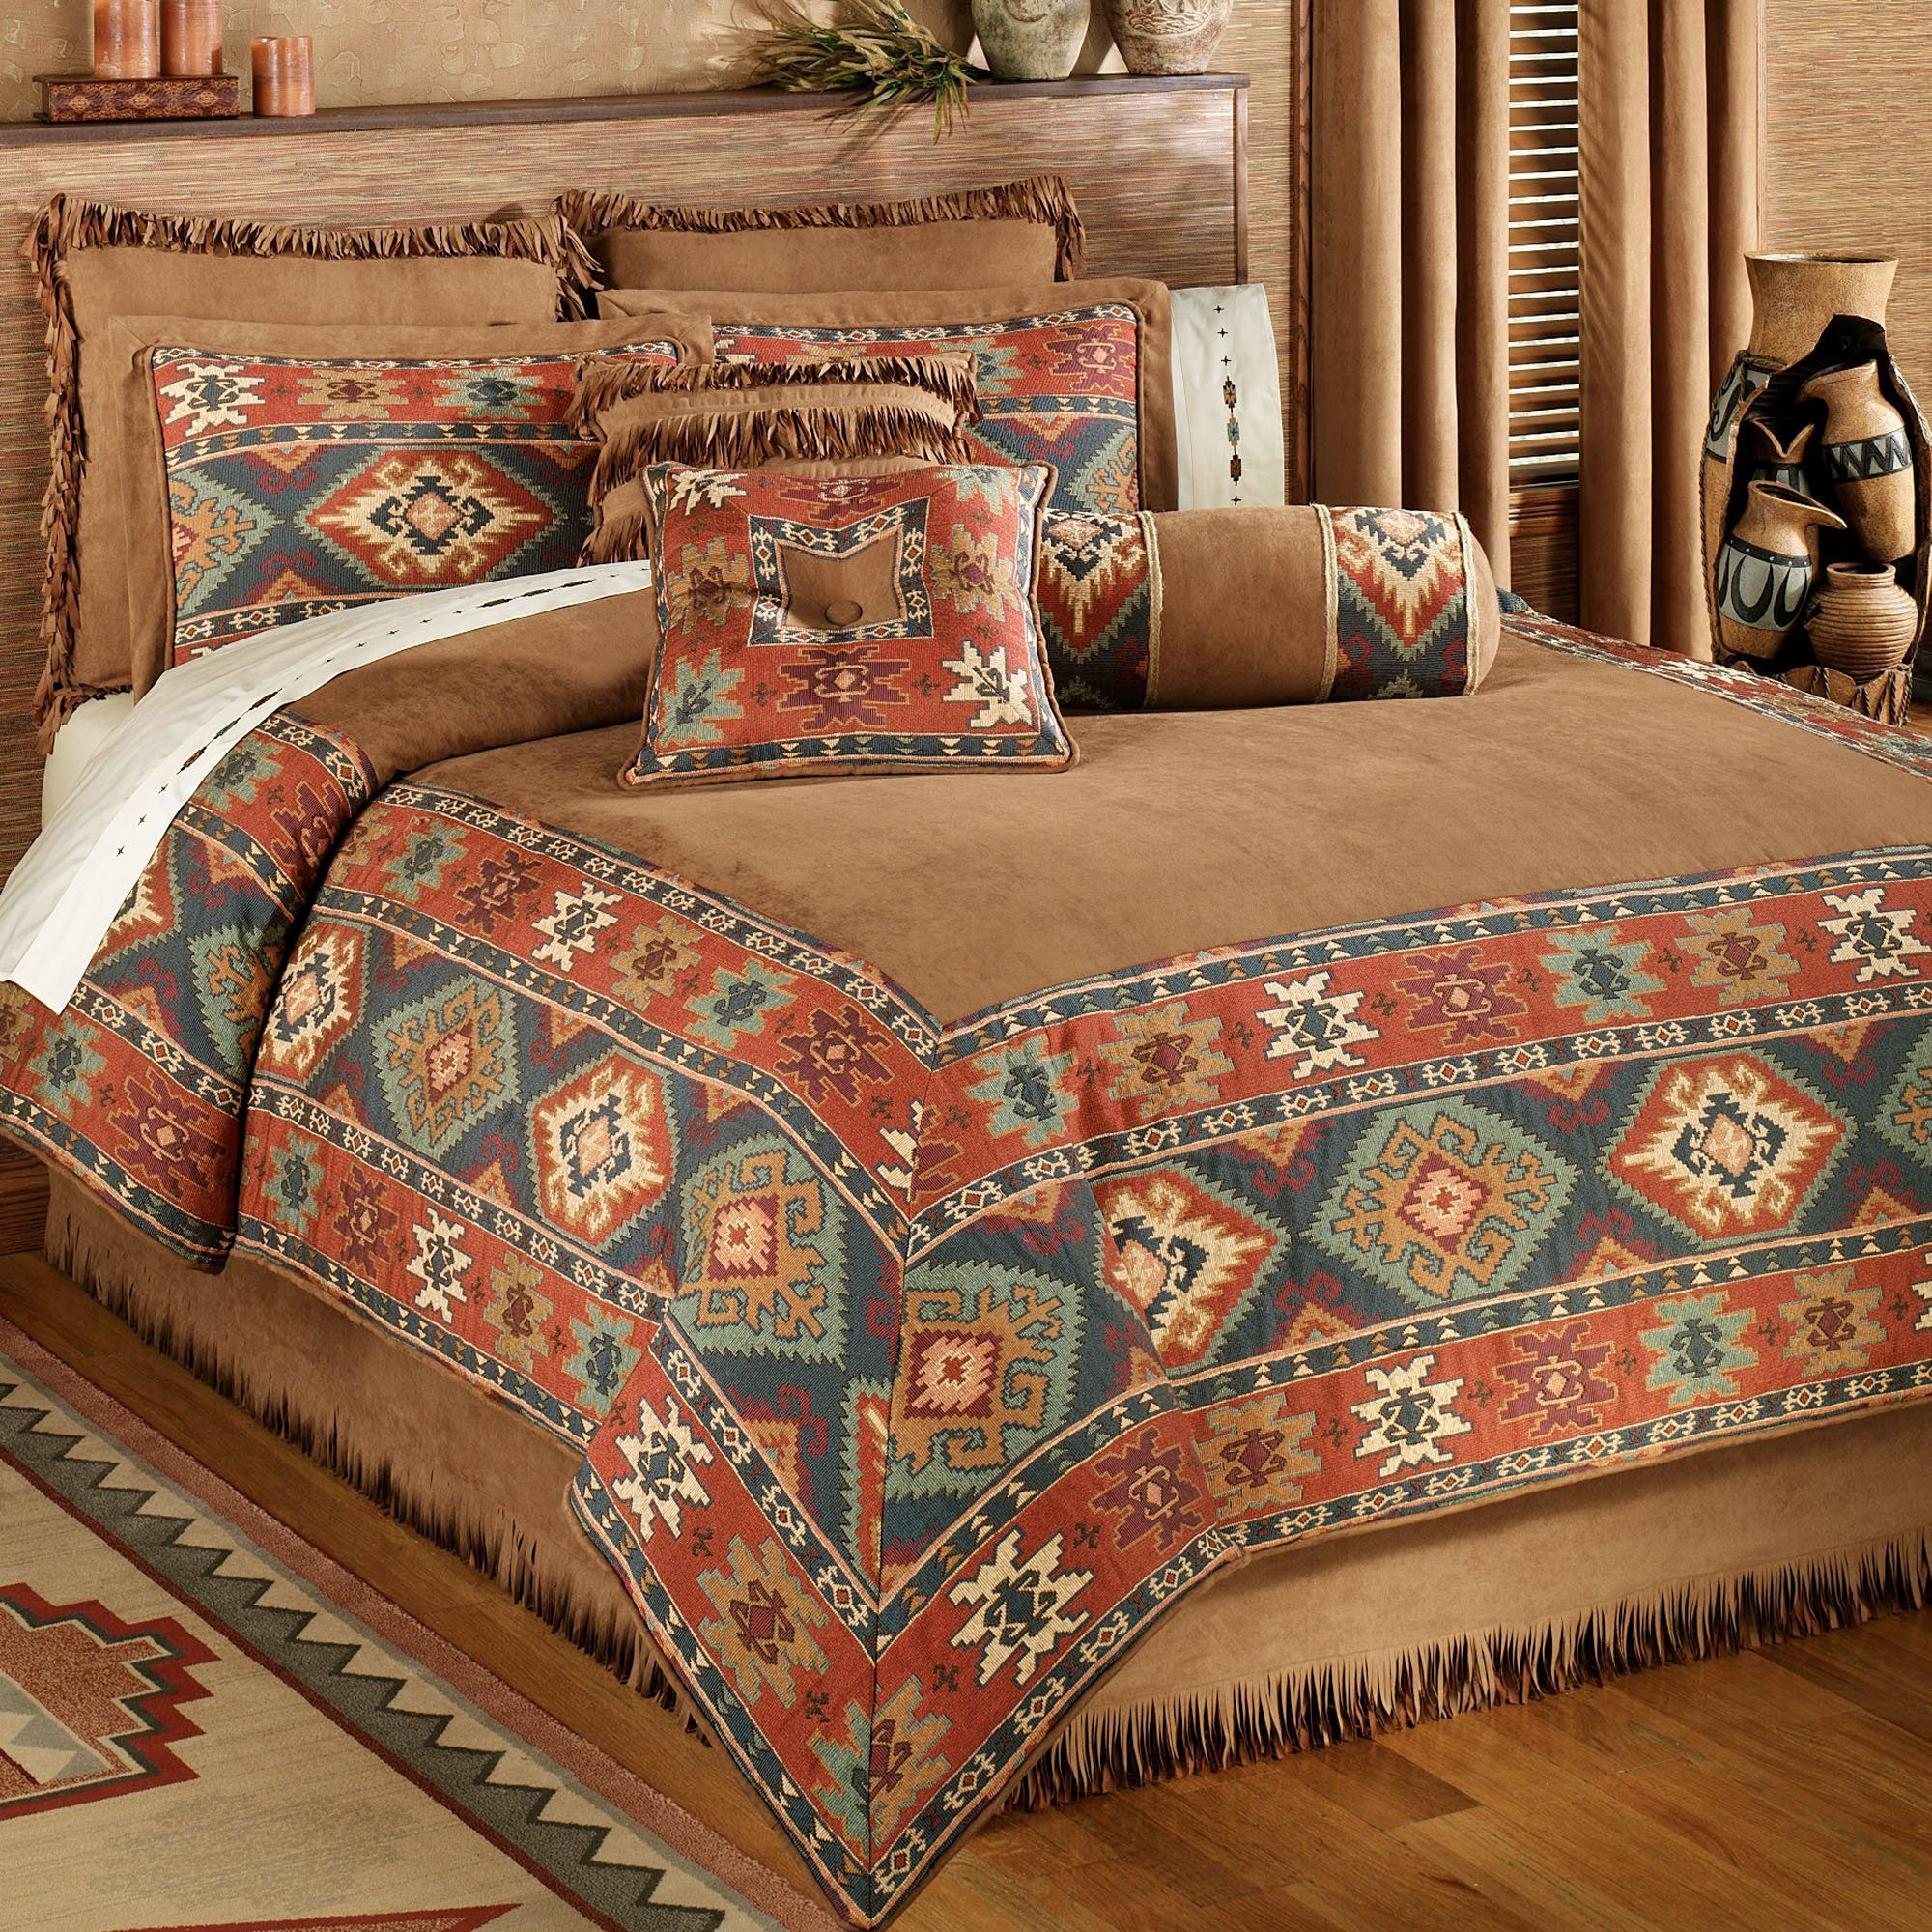 Canyon Ridge Comforter Bedding is part of Southwestern decorating - The rustic, polyester Canyon Ridge Comforter Bedding evokes the spirit of the Southwest  Oversized comforter has a saddle brown, faux suede center